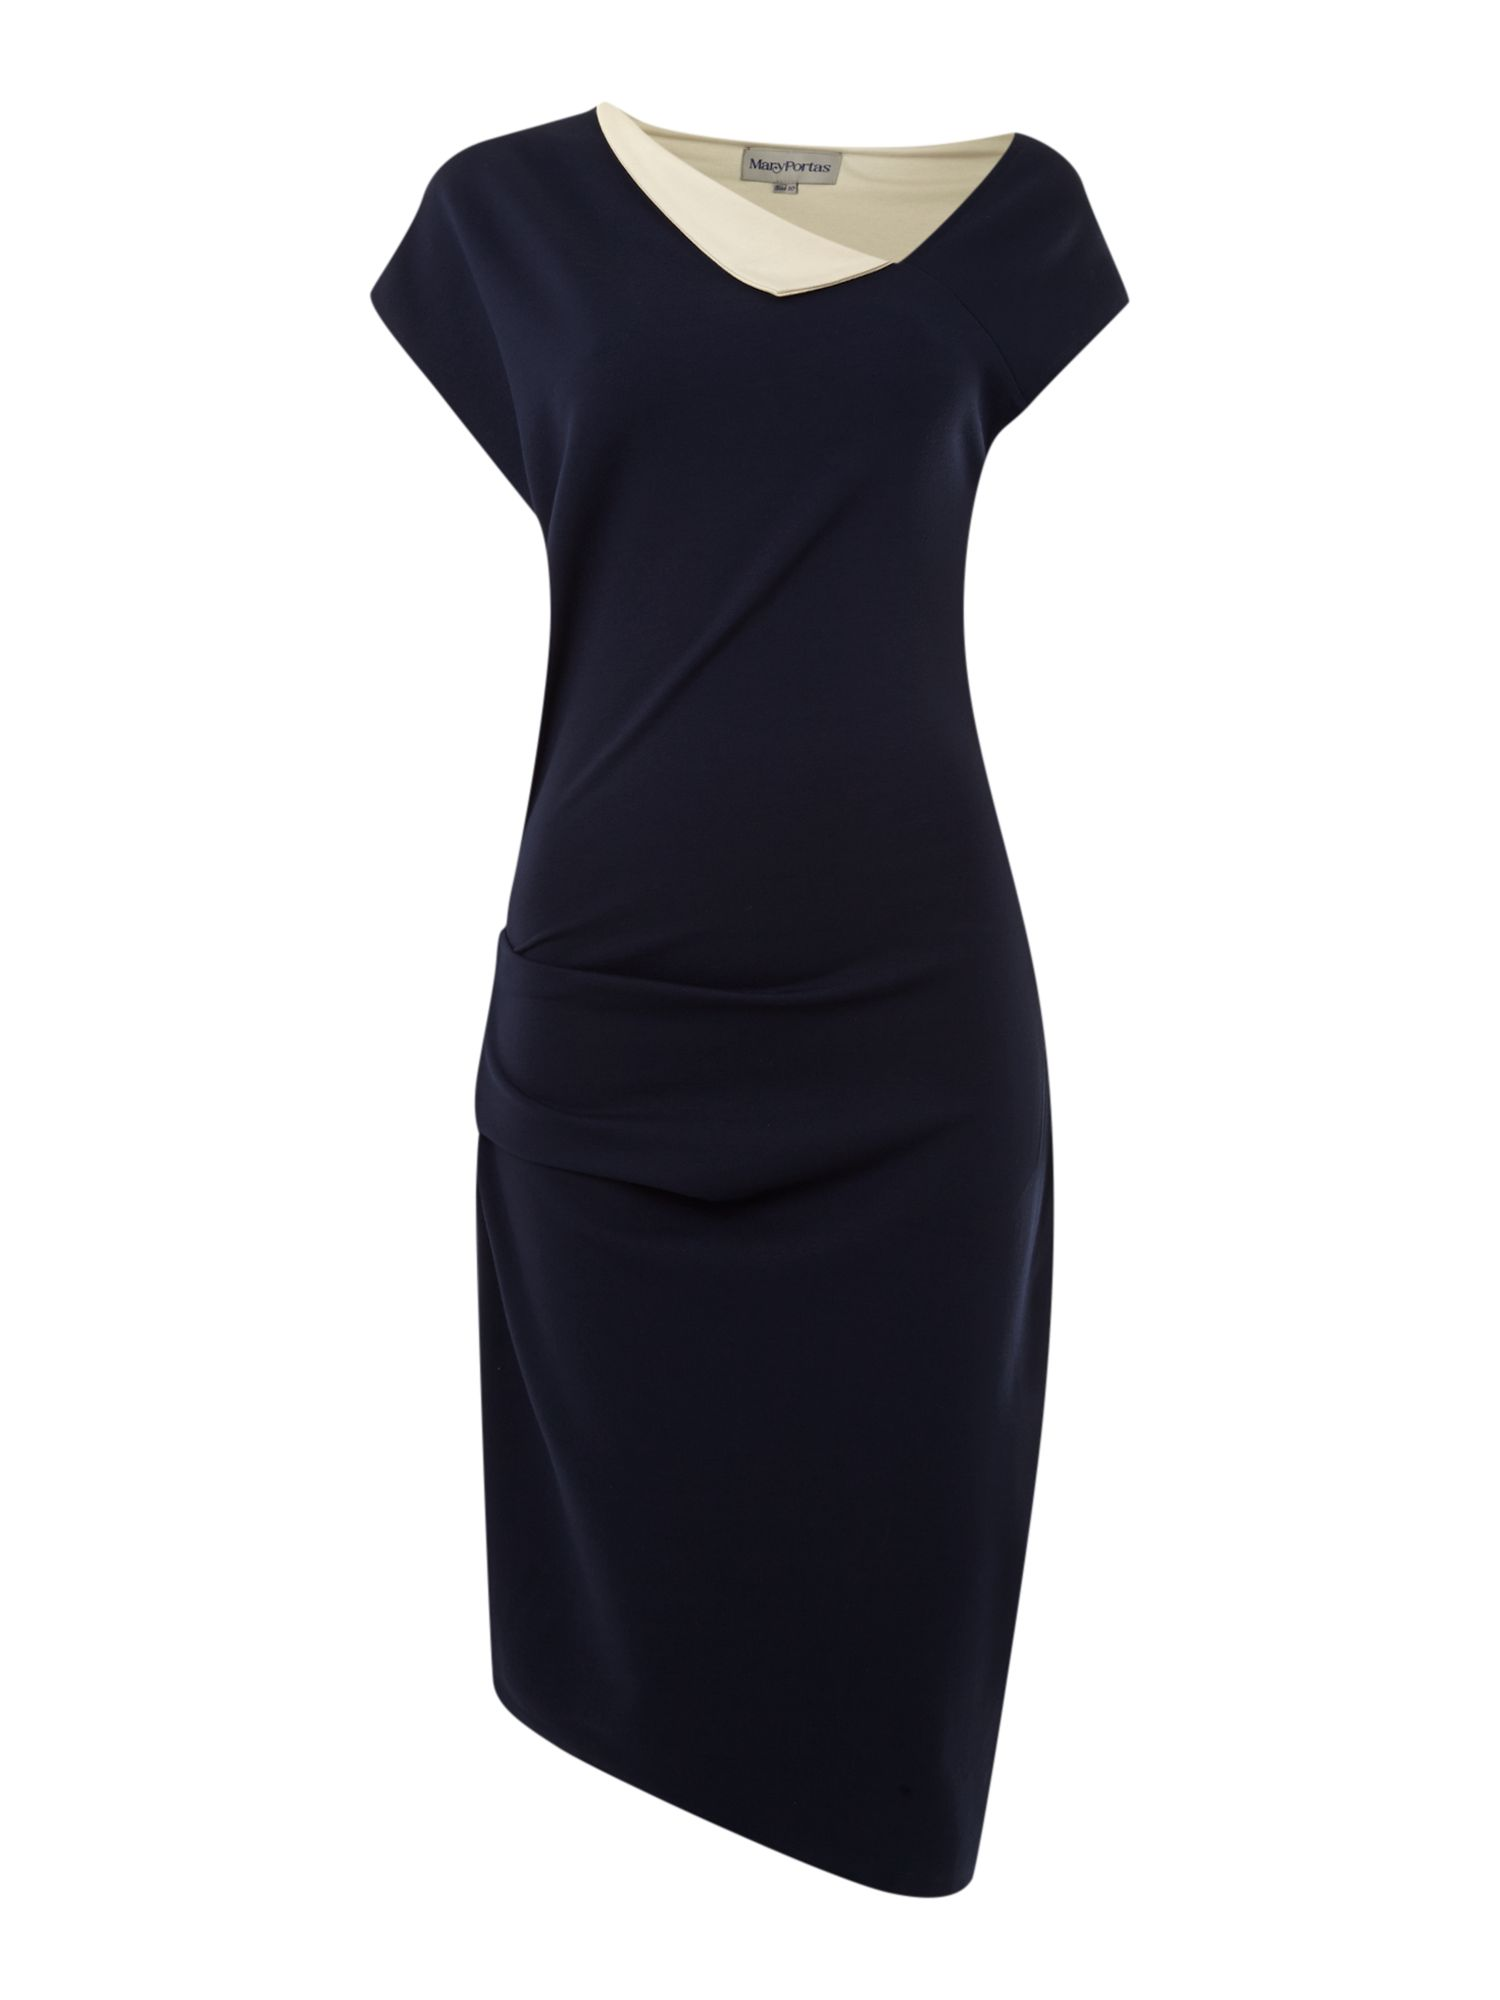 Contrast collar twist and tuck dress